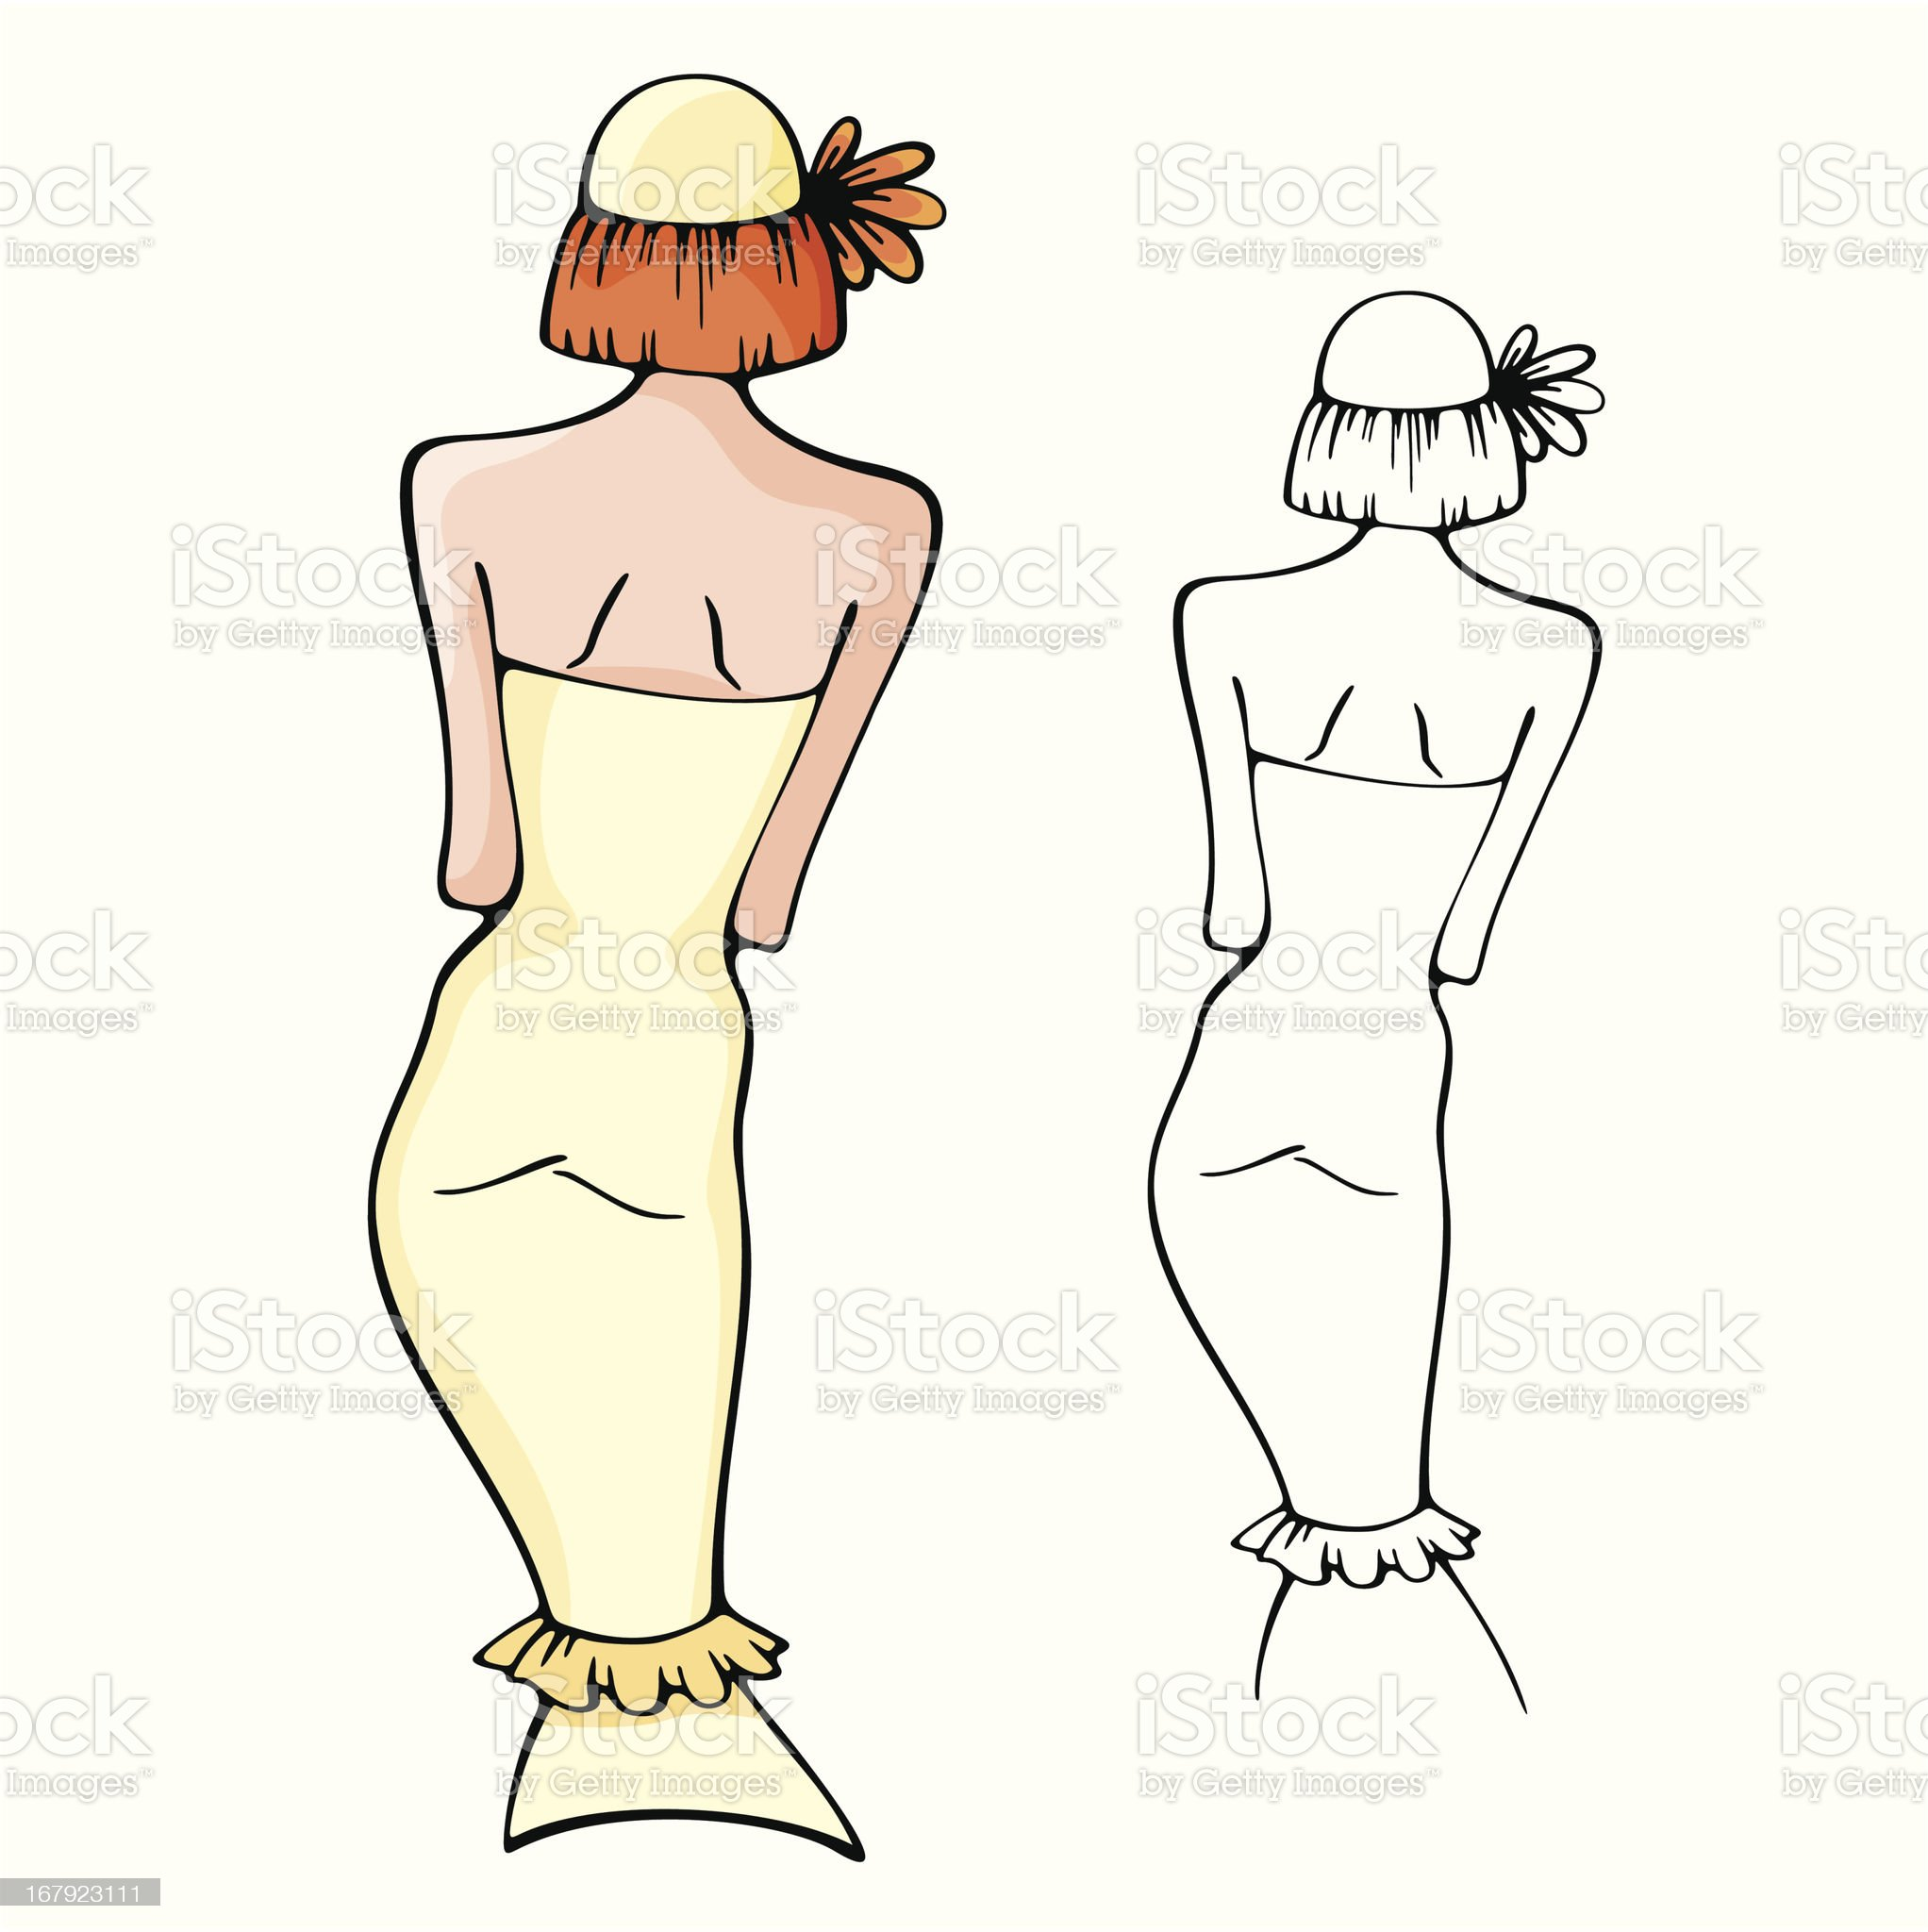 Fashion Woman Vector Illustration Series royalty-free stock vector art